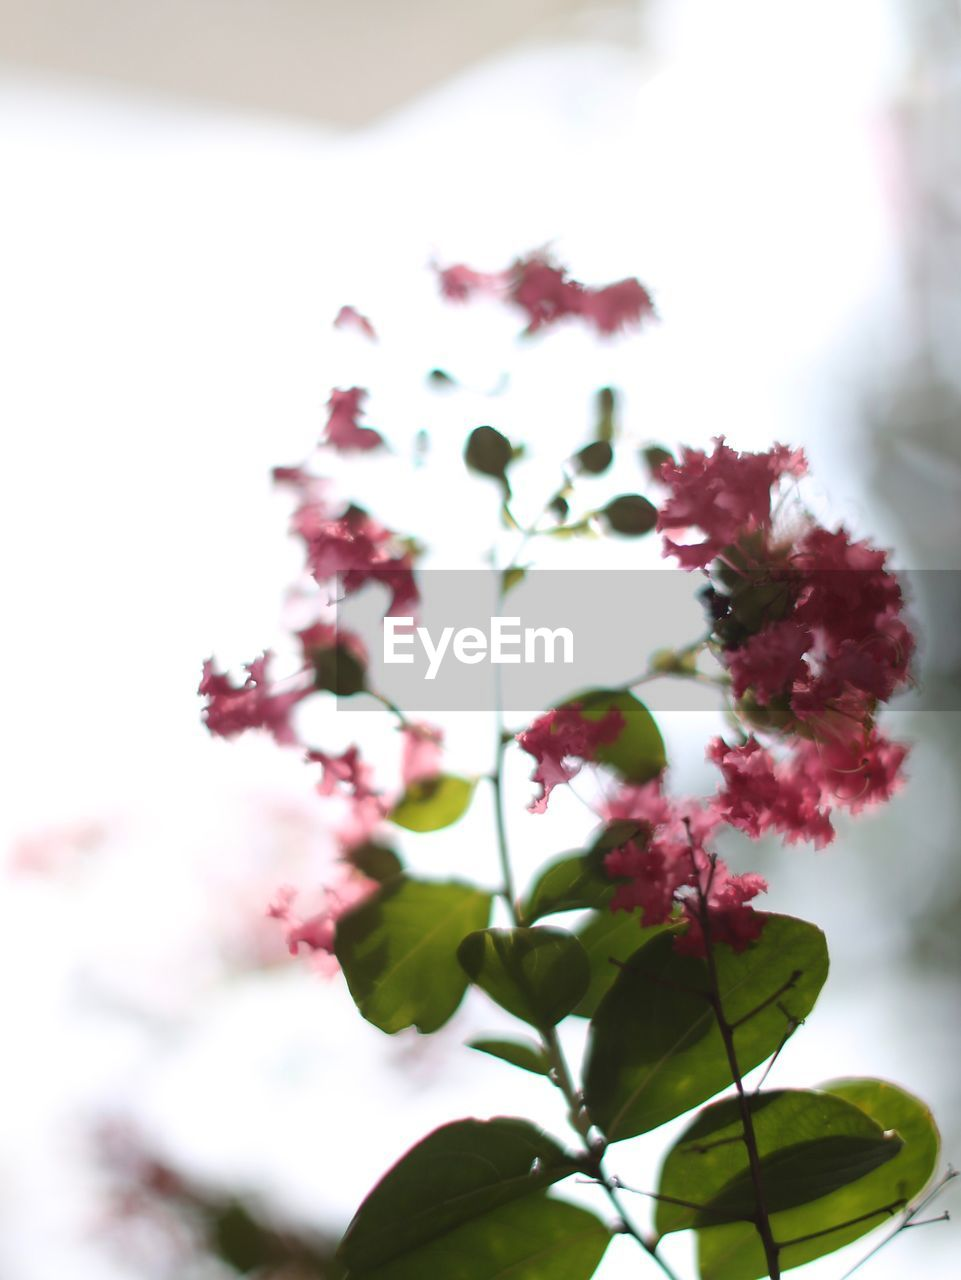 flower, growth, nature, beauty in nature, fragility, freshness, plant, no people, petal, focus on foreground, close-up, day, outdoors, flower head, blooming, tree